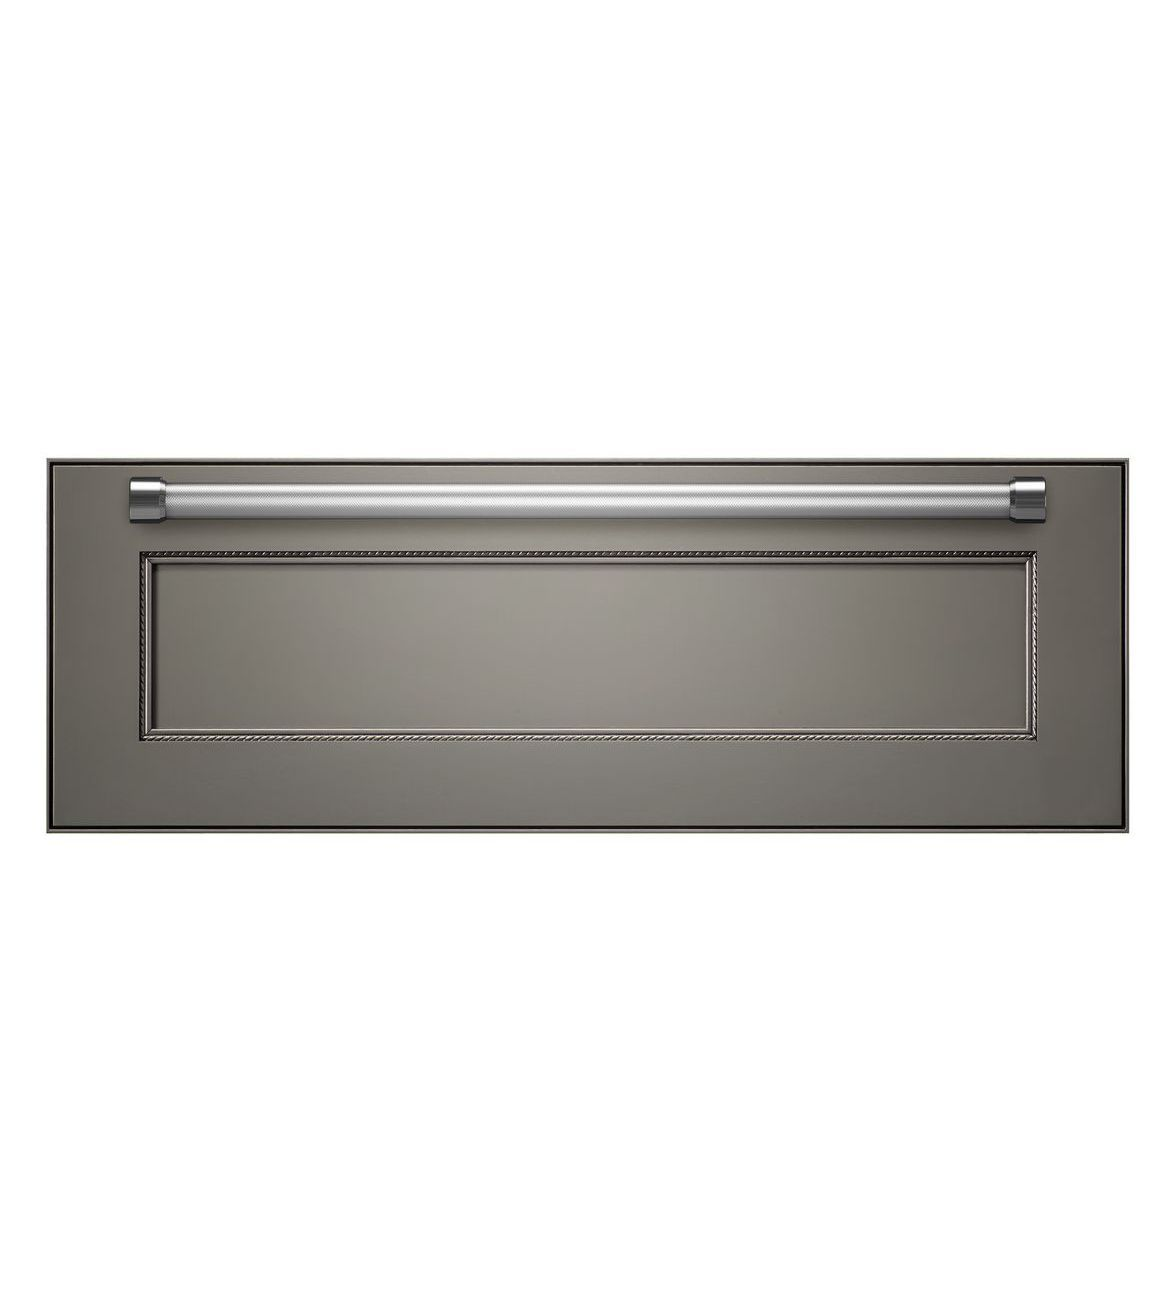 30 slow cook warming drawer architect series ii with